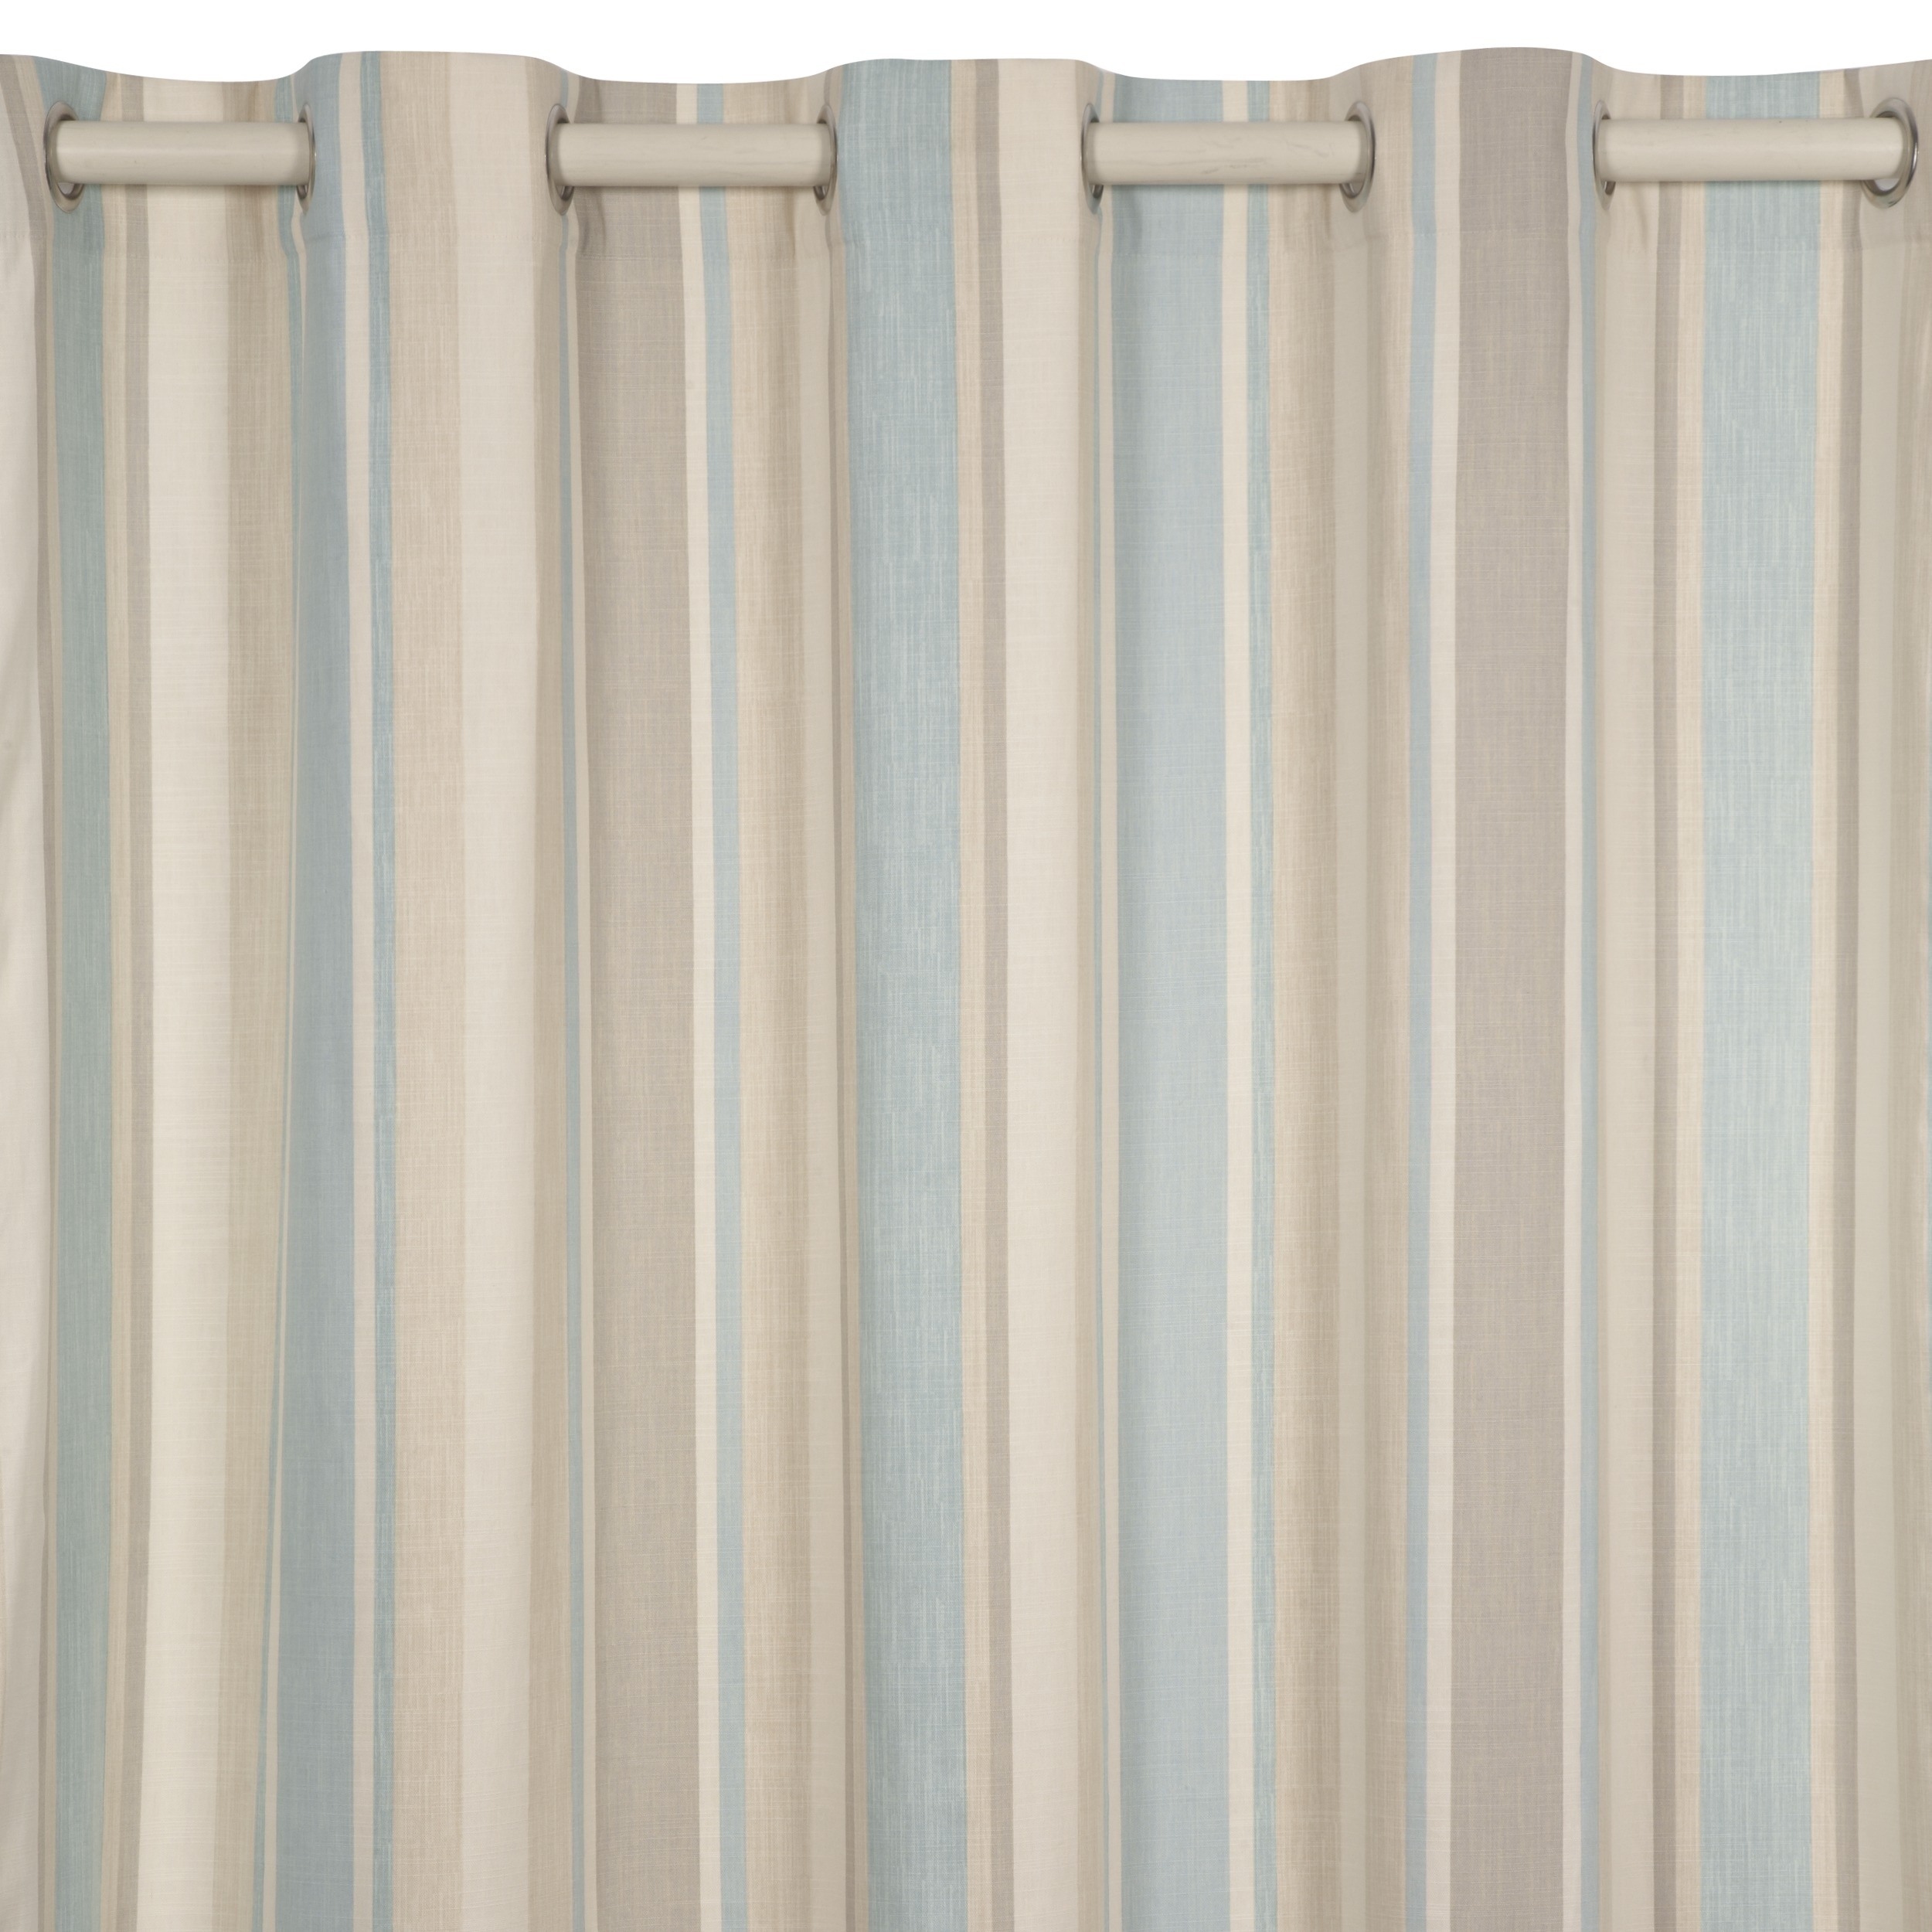 Featured Image of Duck Egg Blue Striped Curtains